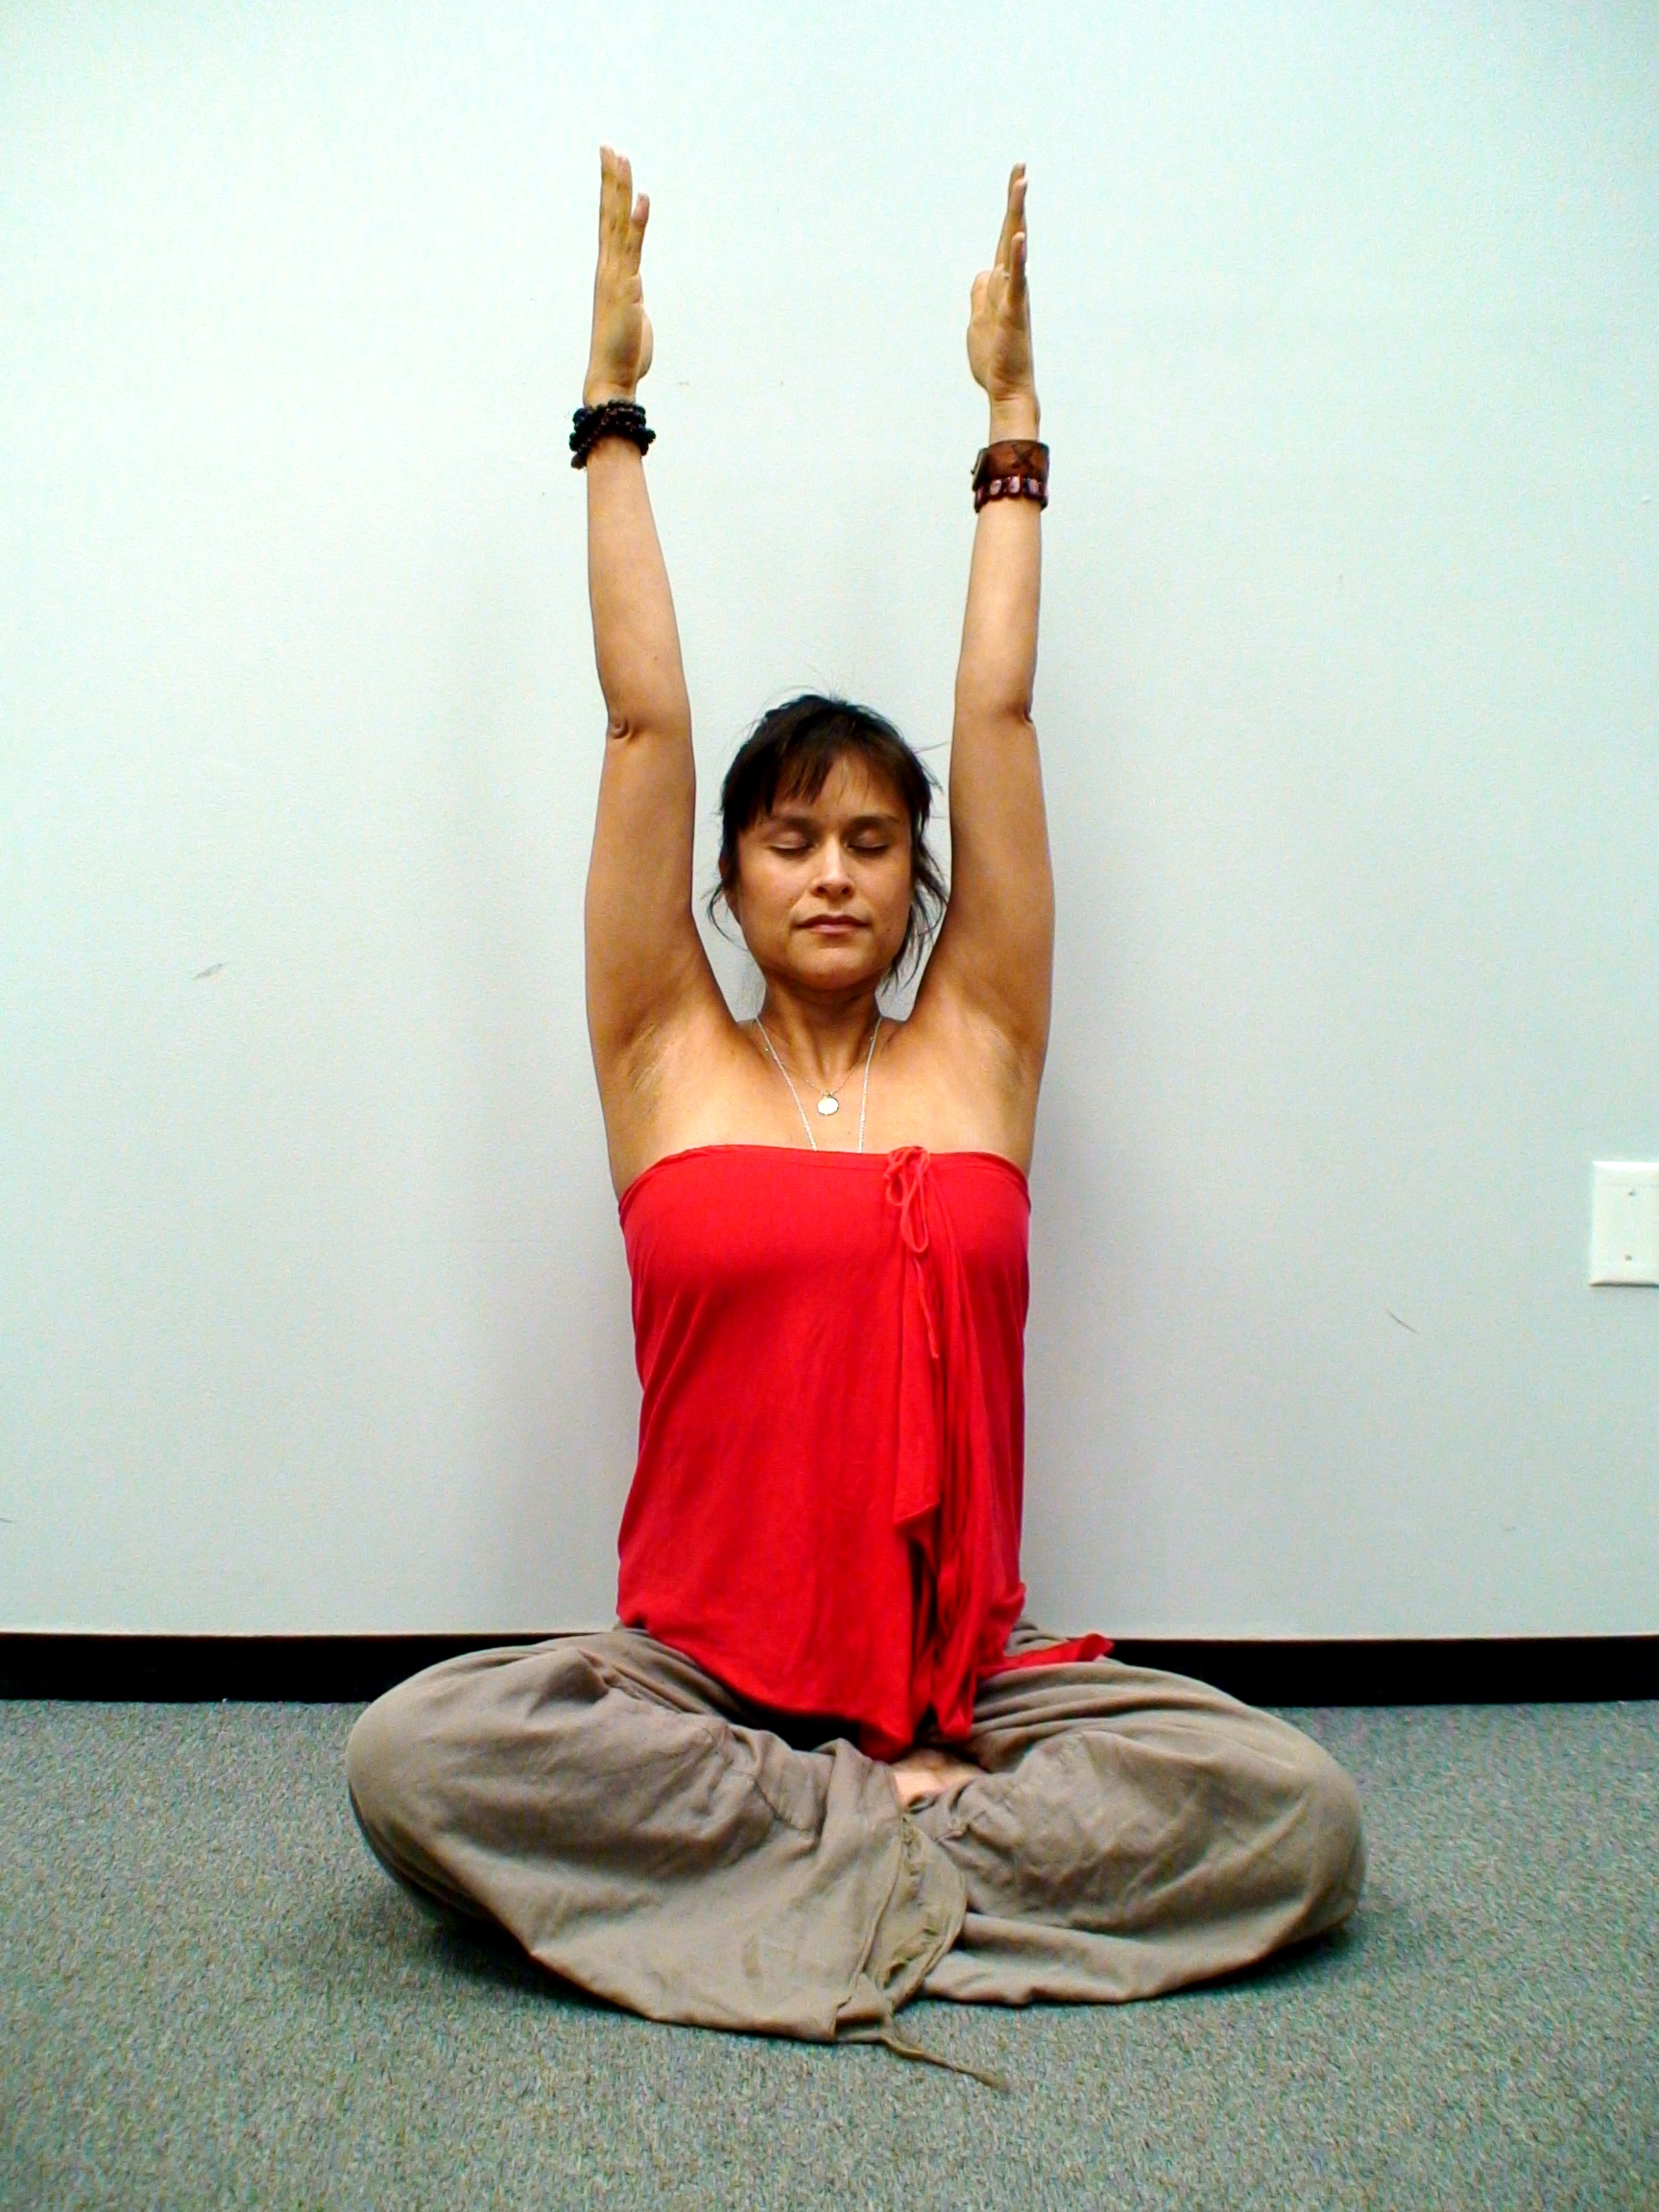 The Sequence Of Yoga Poses In This Weeks Podcast Episode Is BEGINNING SEATED YOGA